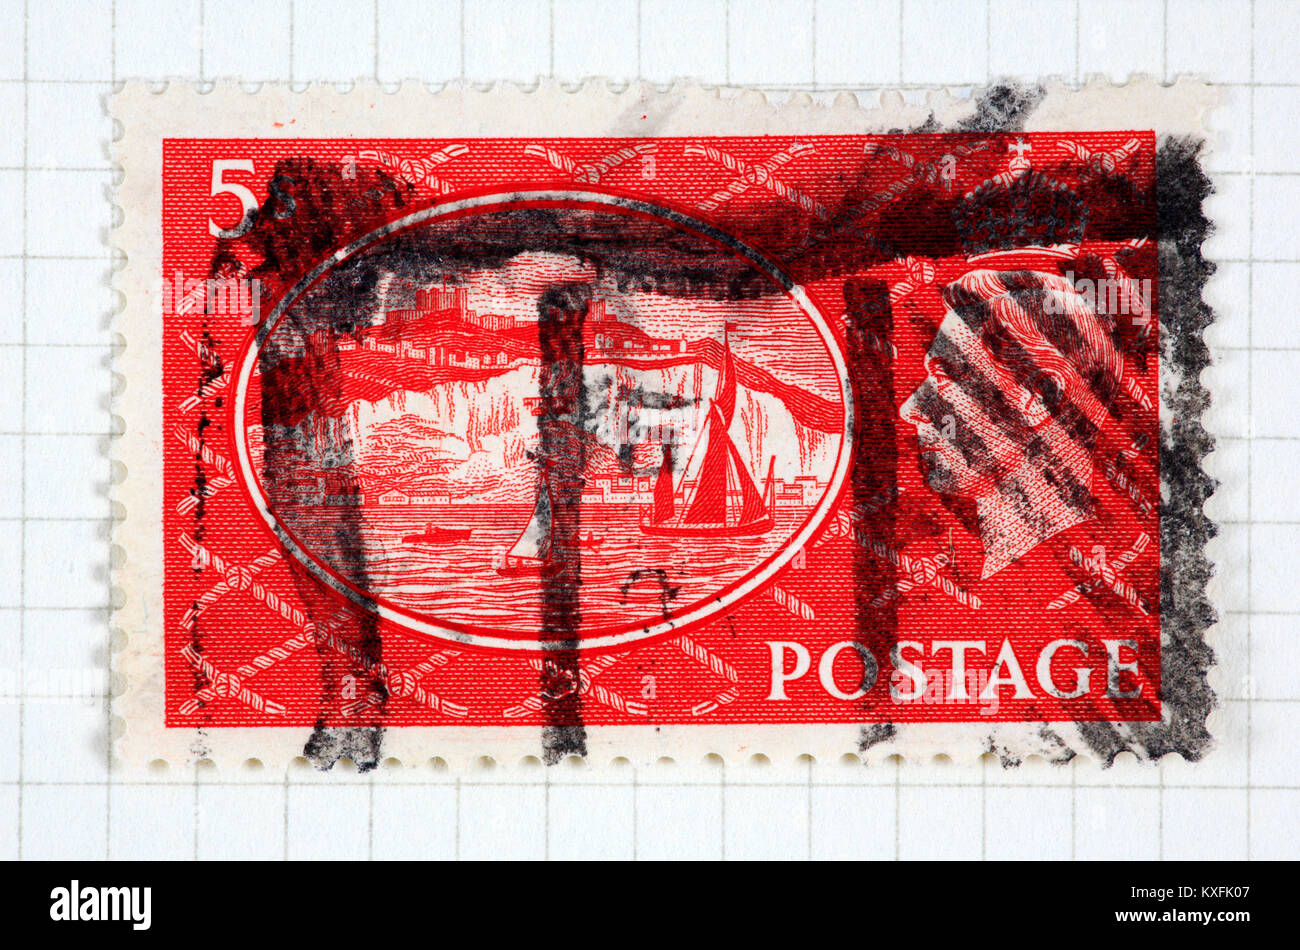 A King George VI used 5s red stamp of 1951 issue. - Stock Image